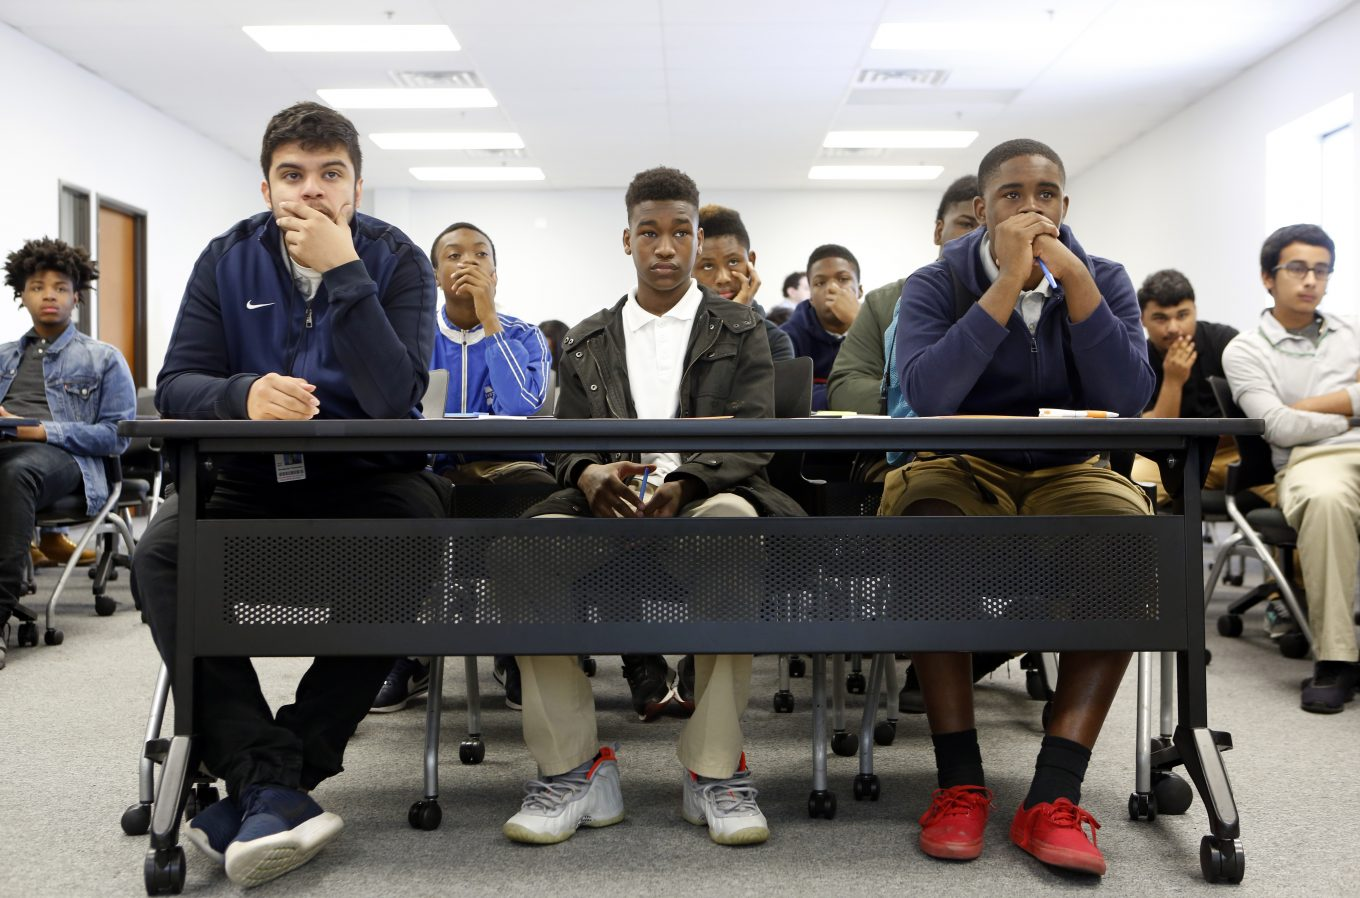 Students listen to a session about career choices at Kimball High School's Academy of Hospitality and Tourism. Photo/Lara Solt